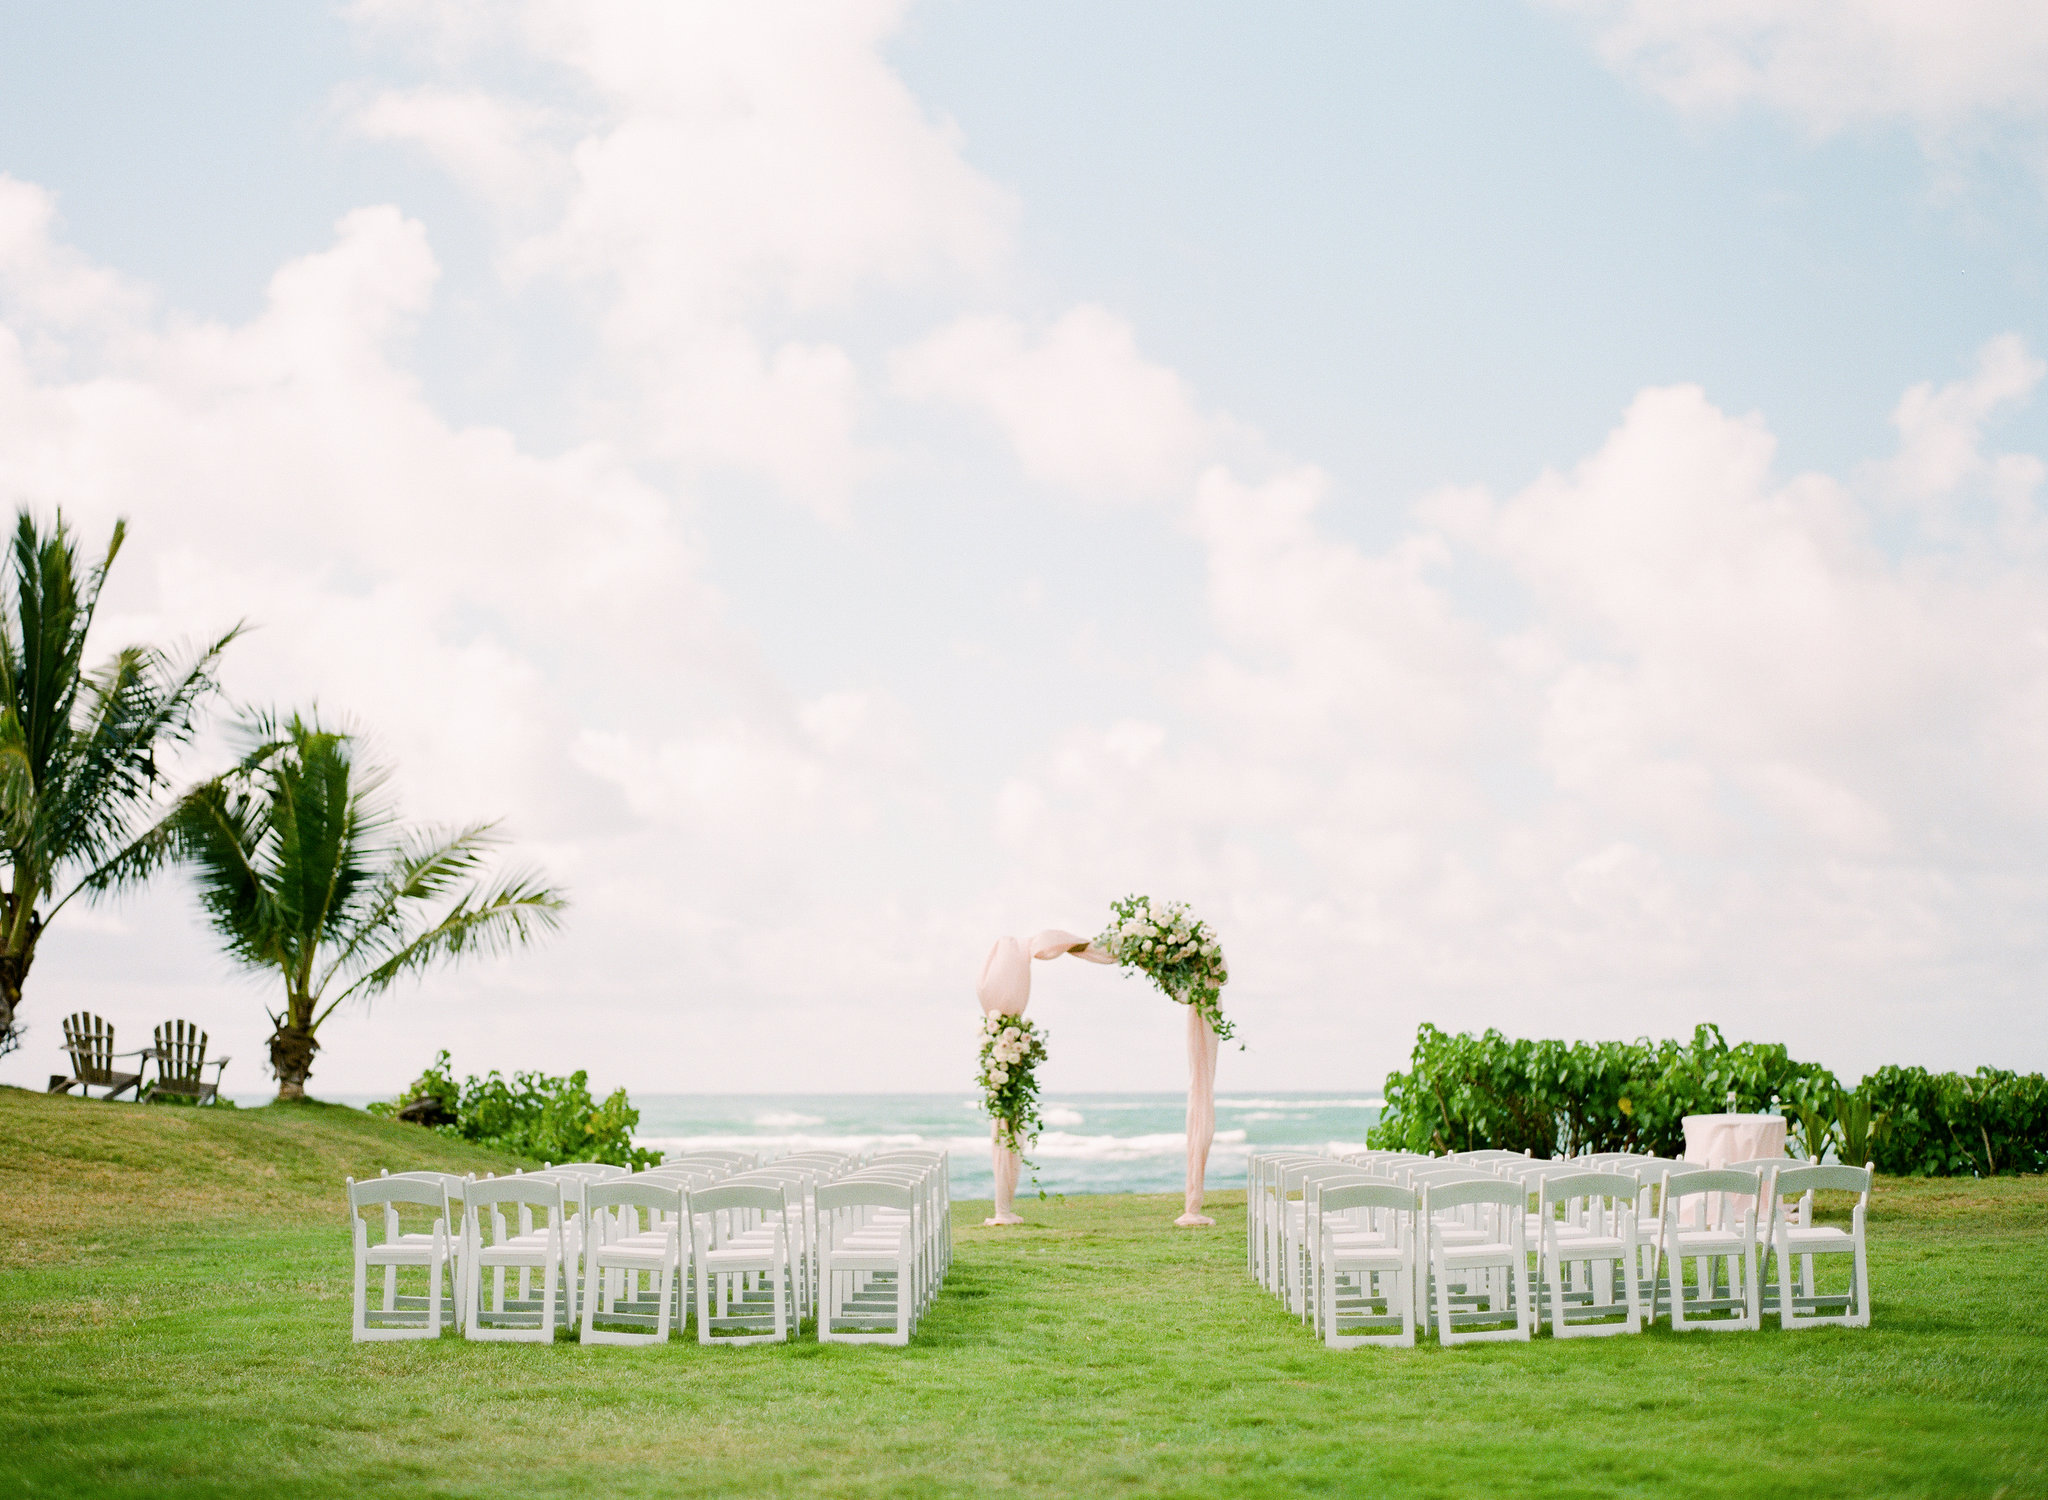 Hawaiian Wedding | Beach Wedding | Aria Studios | Chinese Wedding | Fine Art Wedding Blog | Canadian Wedding Blog | Joy Wed | Outdoor Wedding | Tent Wedding